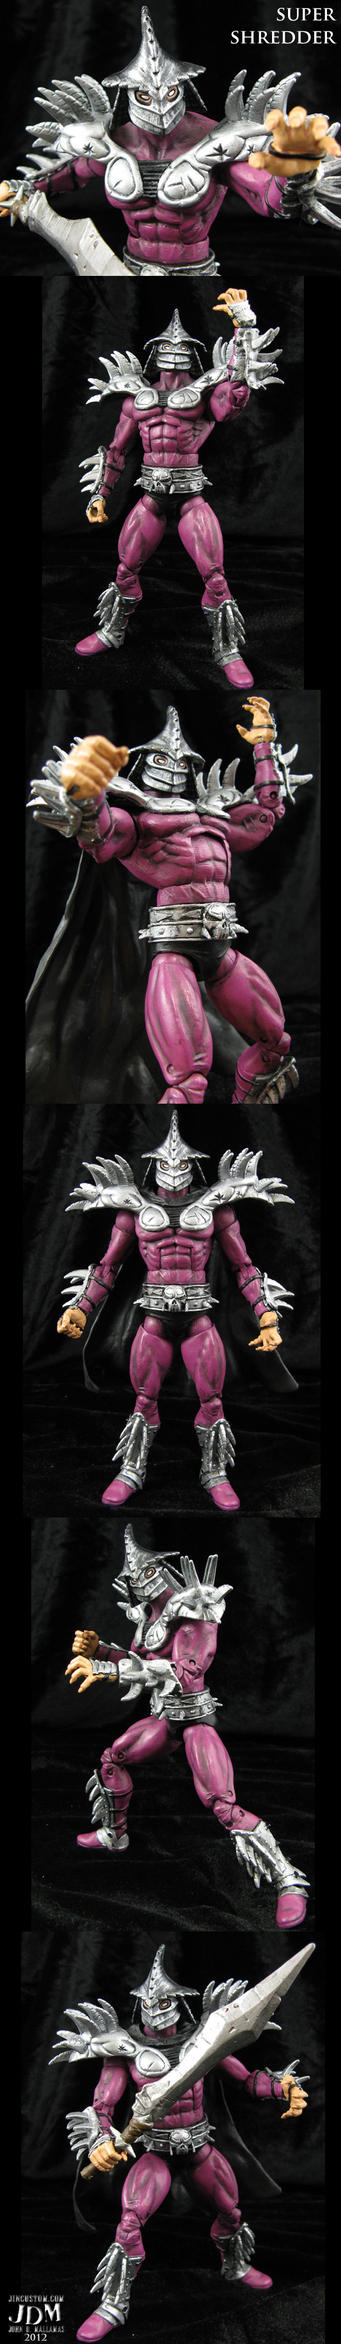 Super Shredder 2.0 movie style figure by Jin-Saotome